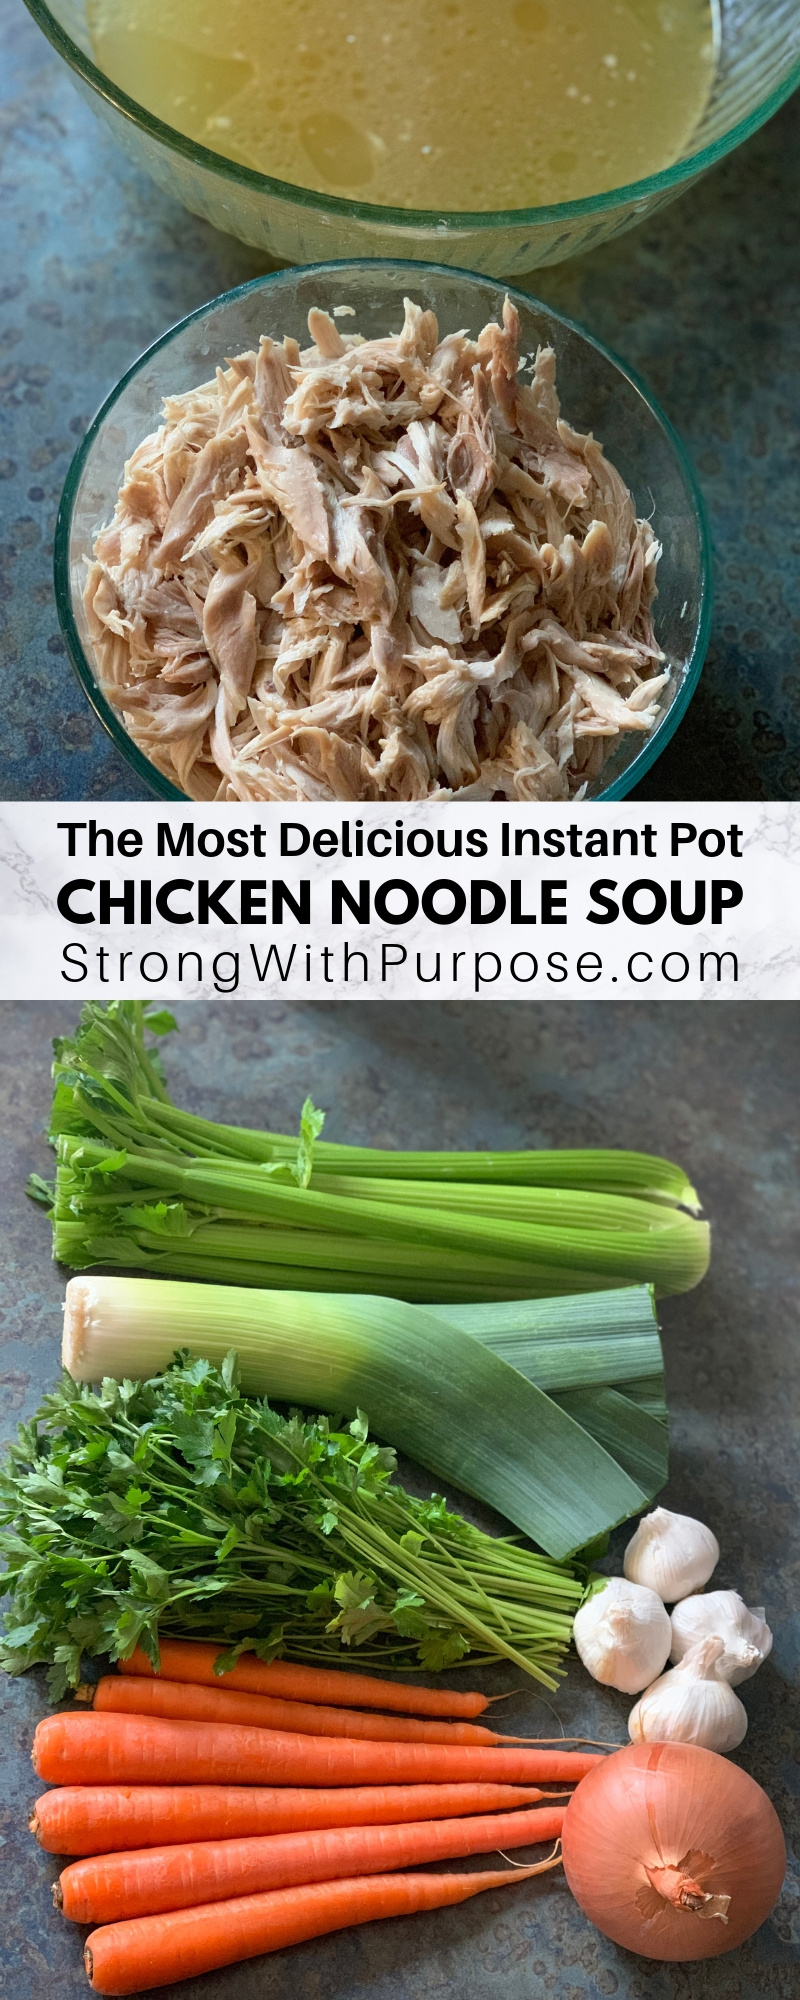 The Most Delicious Instant Pot Chicken Noodle Soup - Easy Recipe by Strong with Purpose